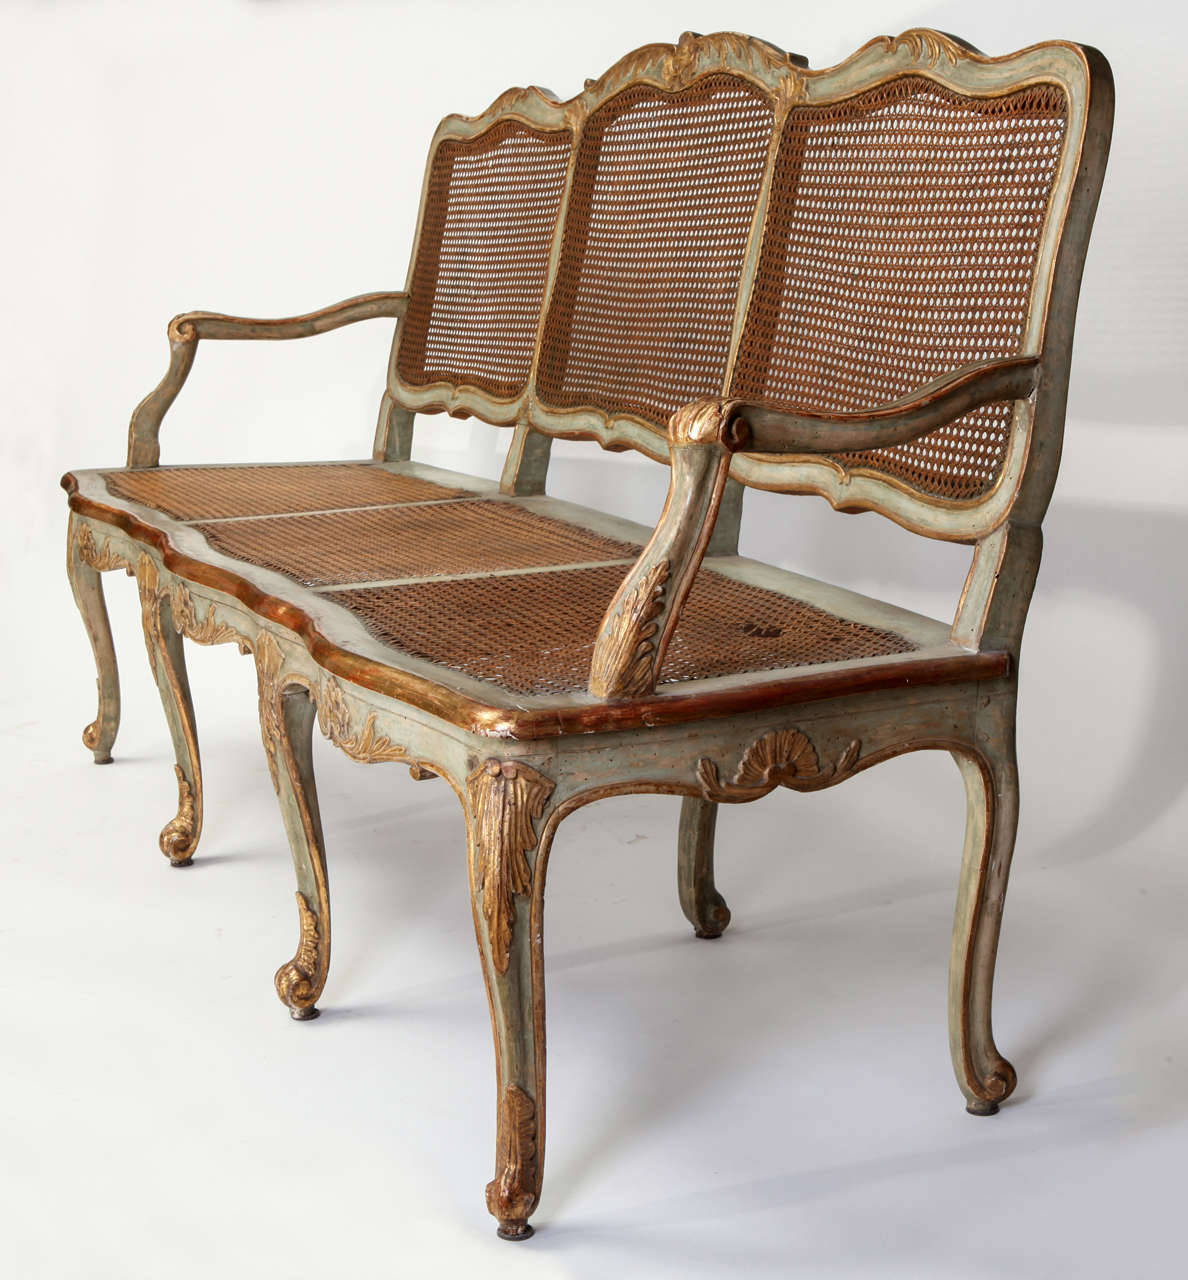 Fine Italian 18th Century Parcel-Gilt and Painted Canape In Good Condition For Sale In Rome, IT